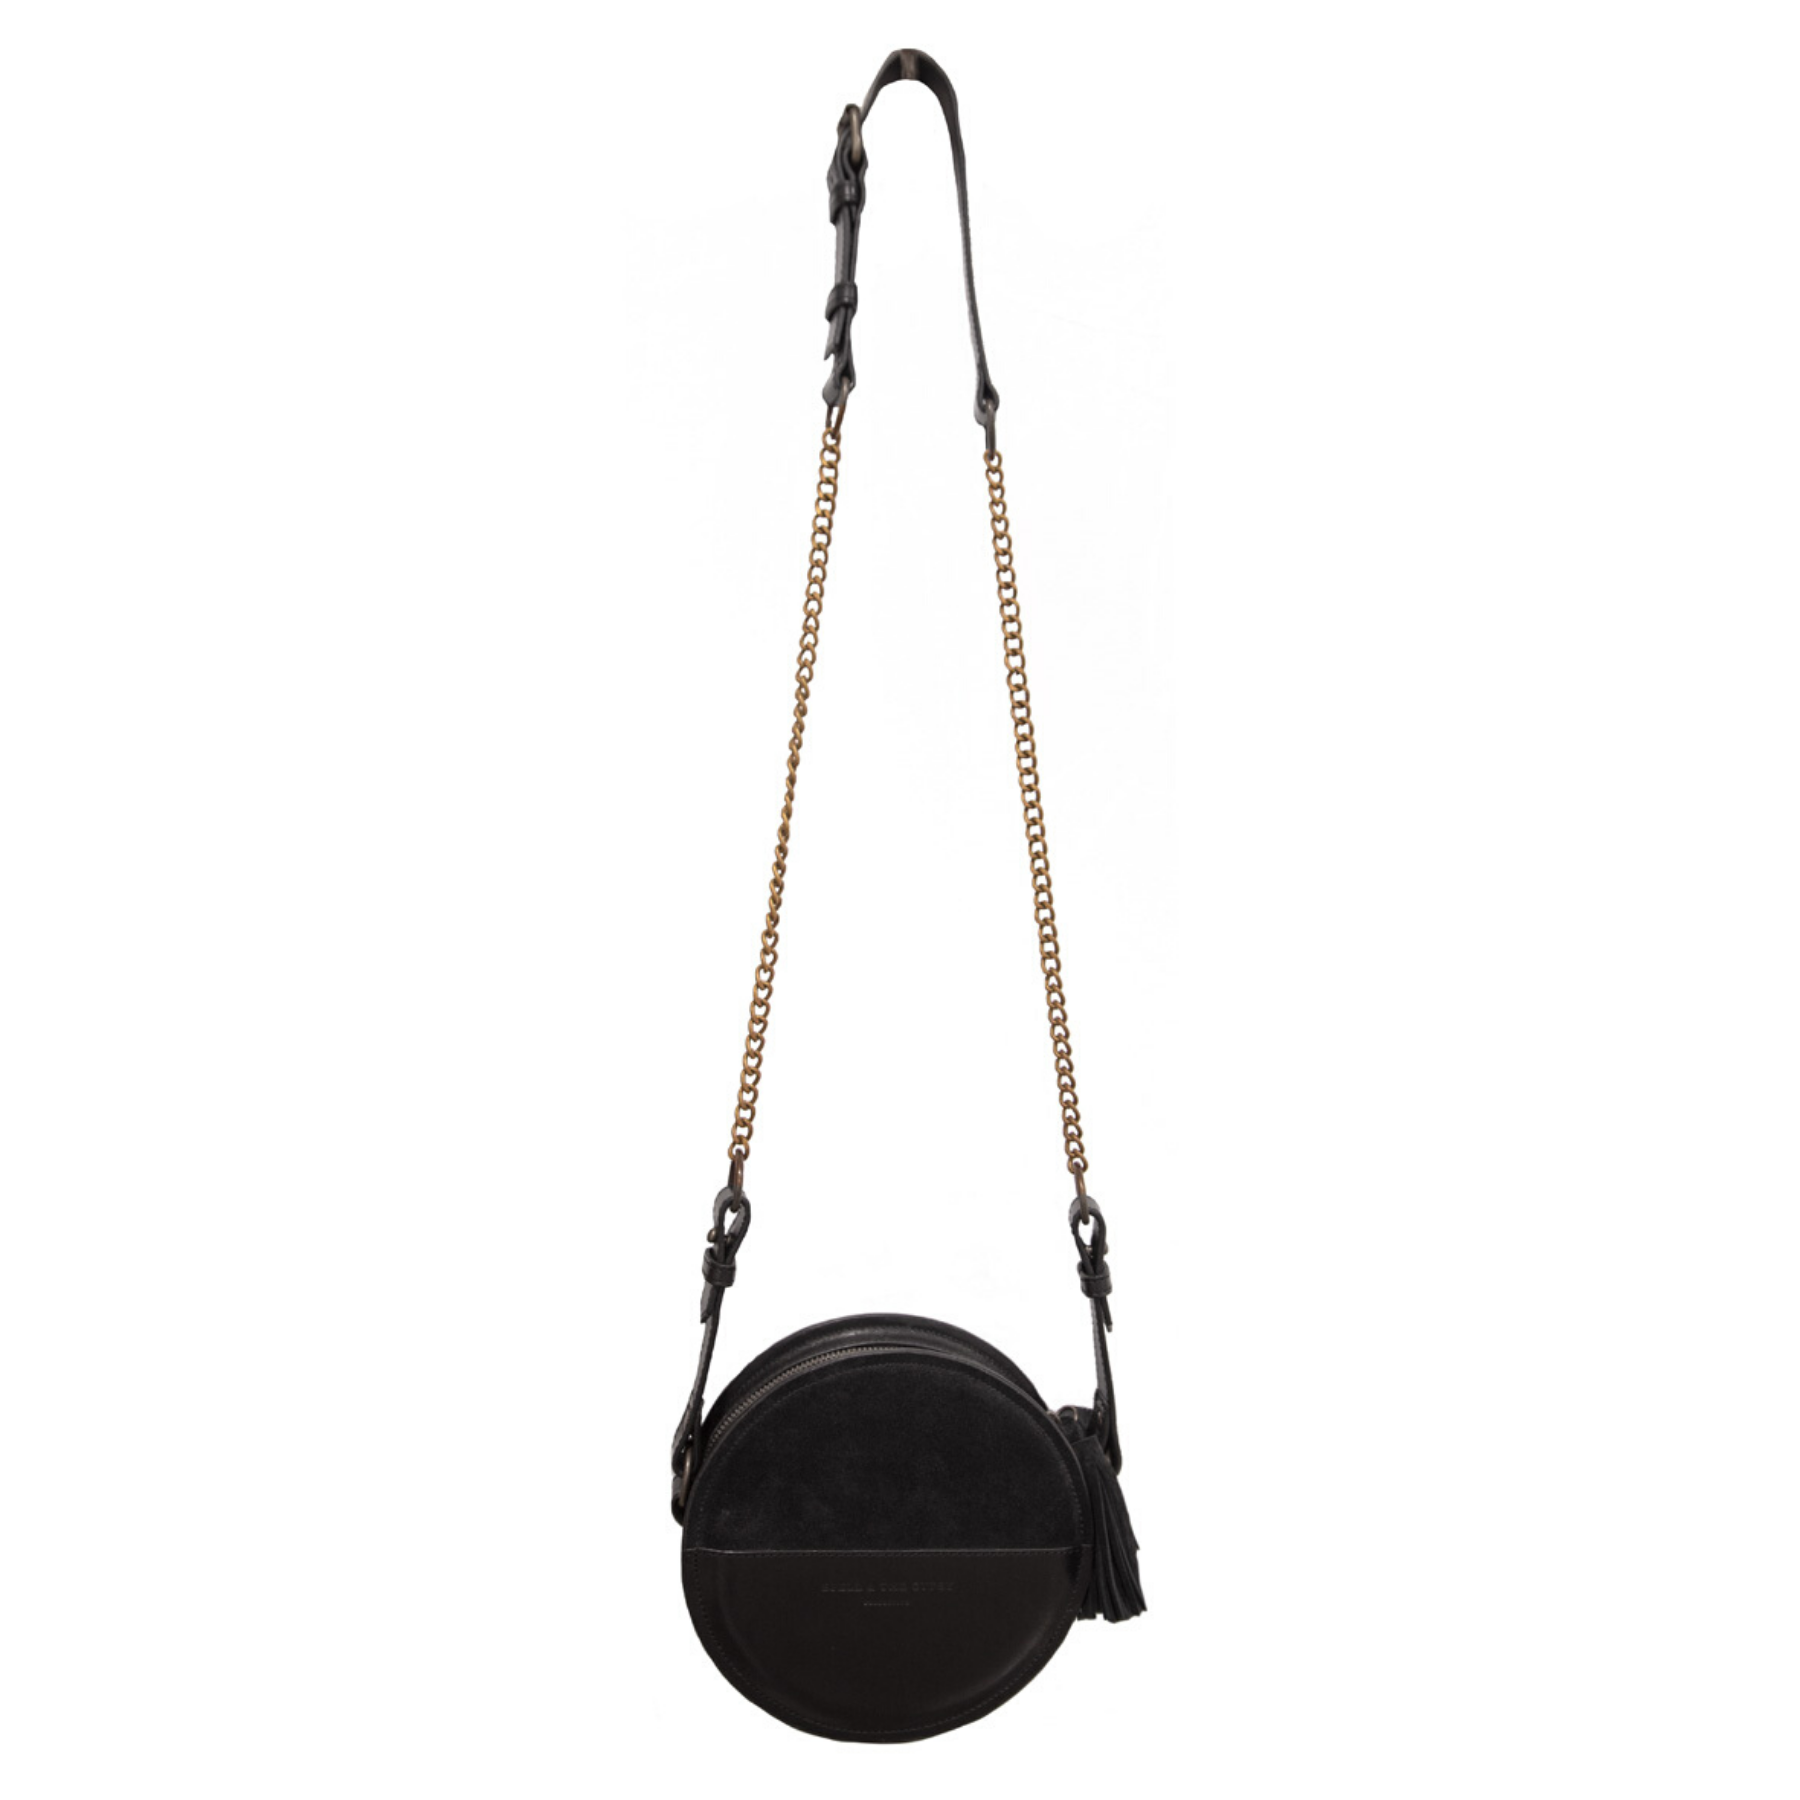 Full Moon Leather Bag